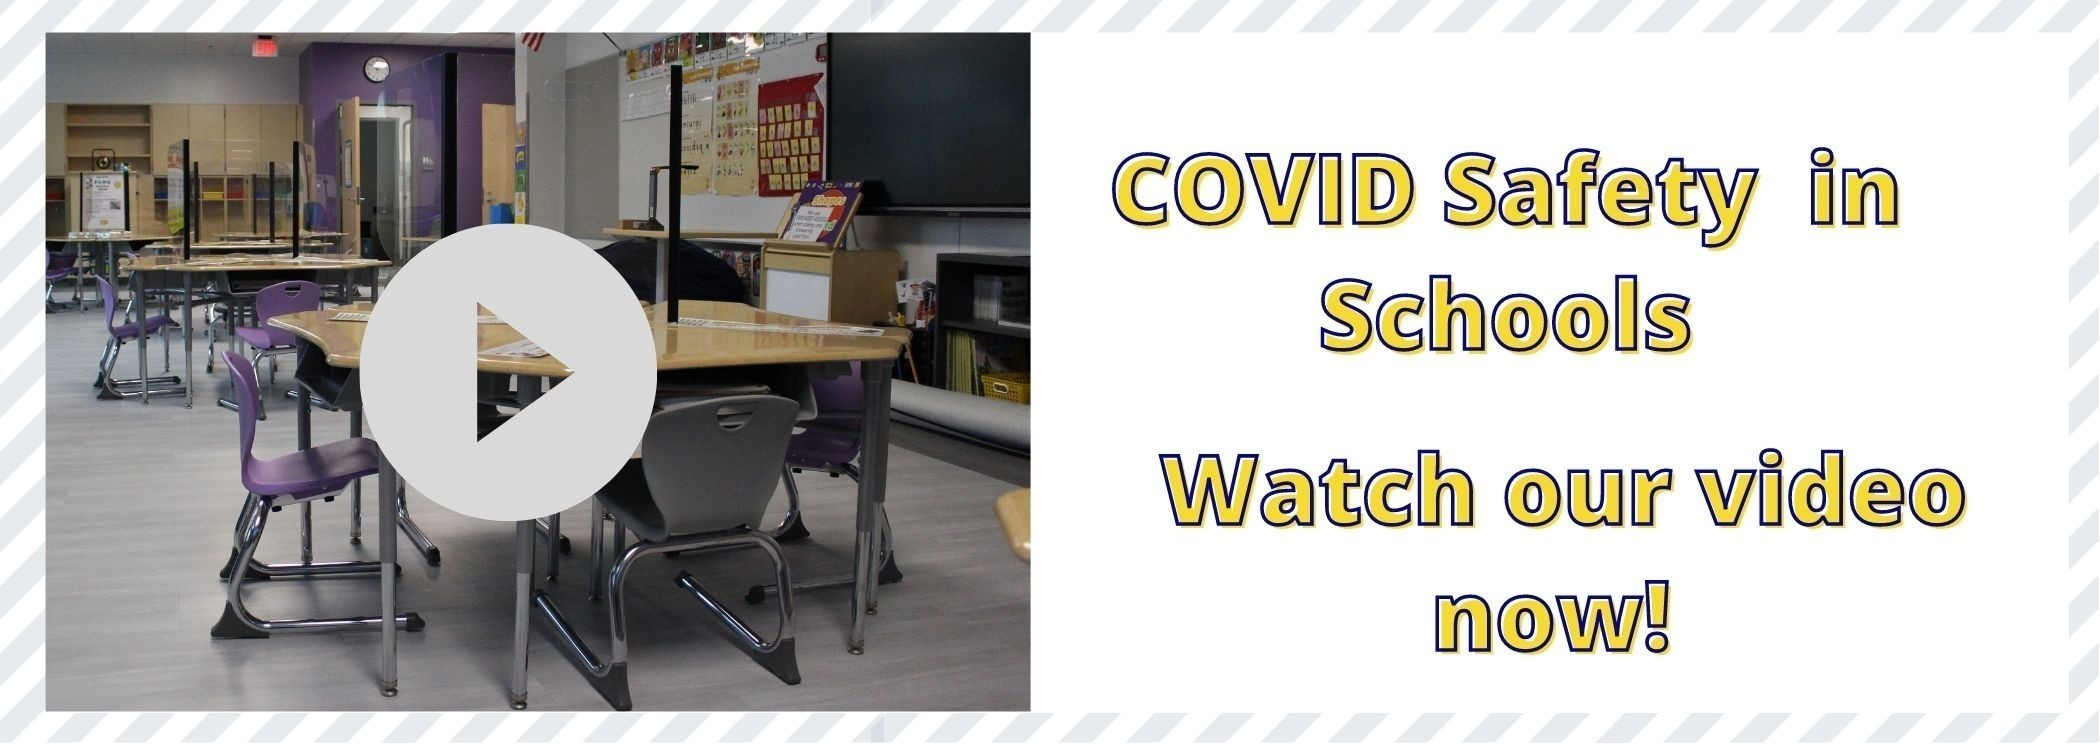 COVID Safety in our Schools - Watch our Video Now